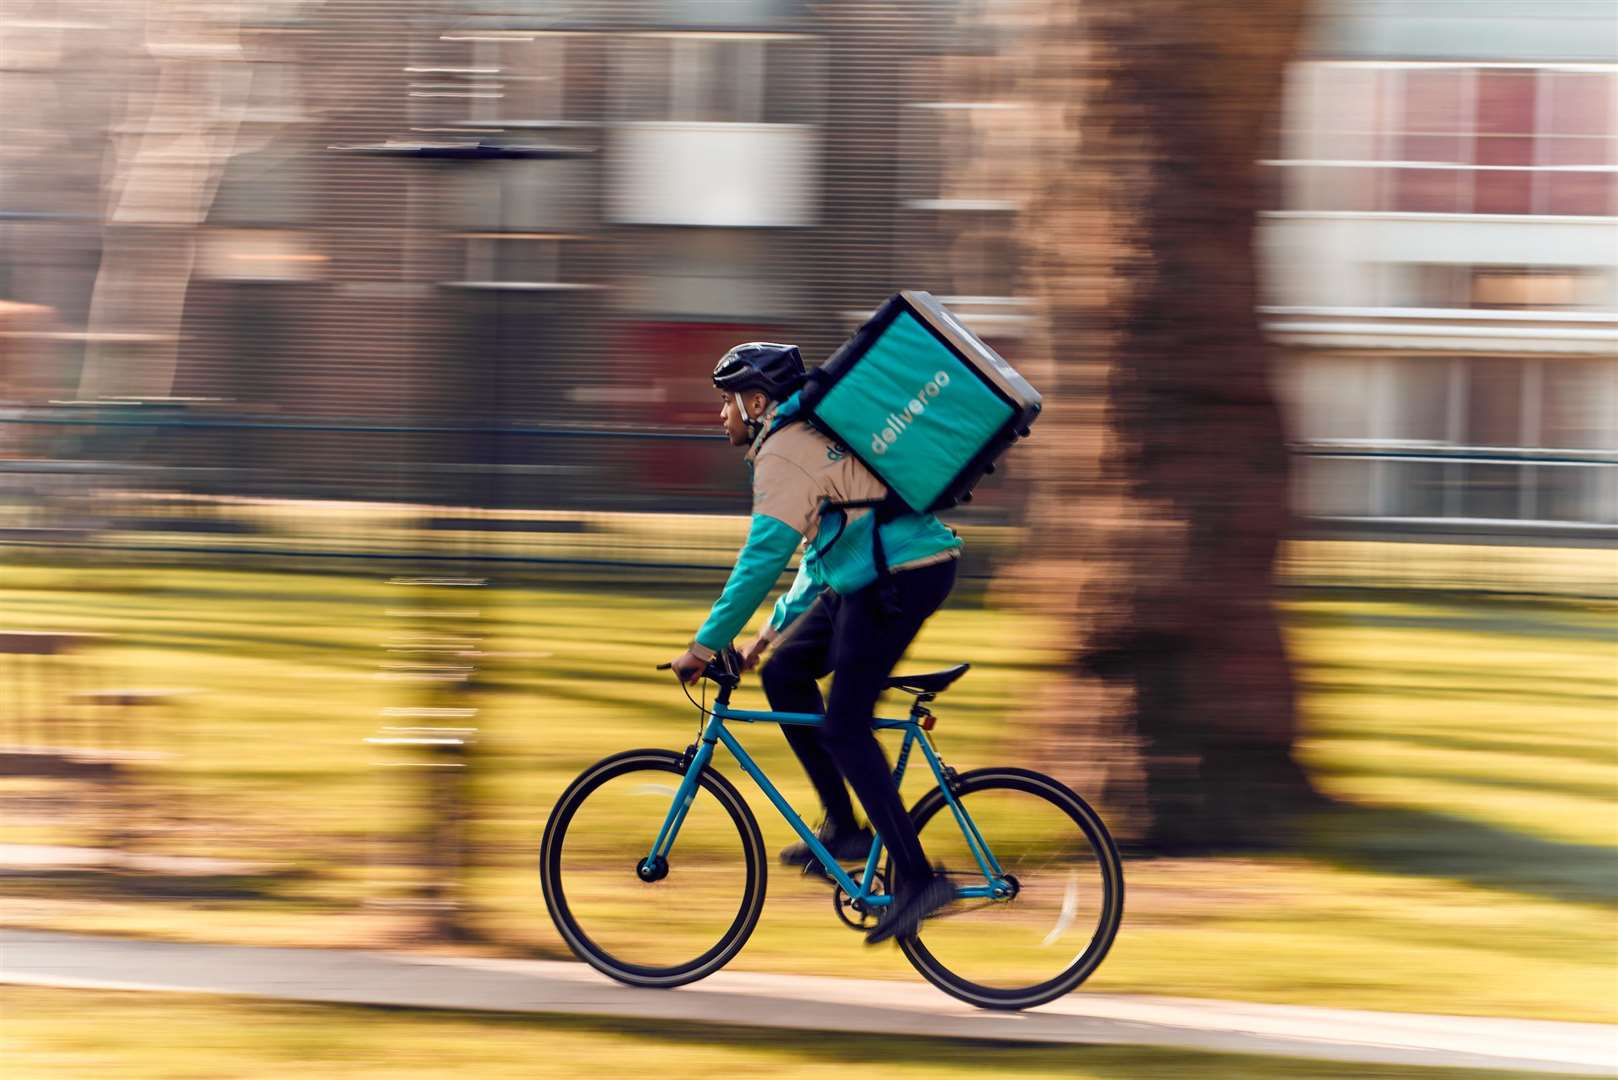 Deliveroo is coming to Folkestone